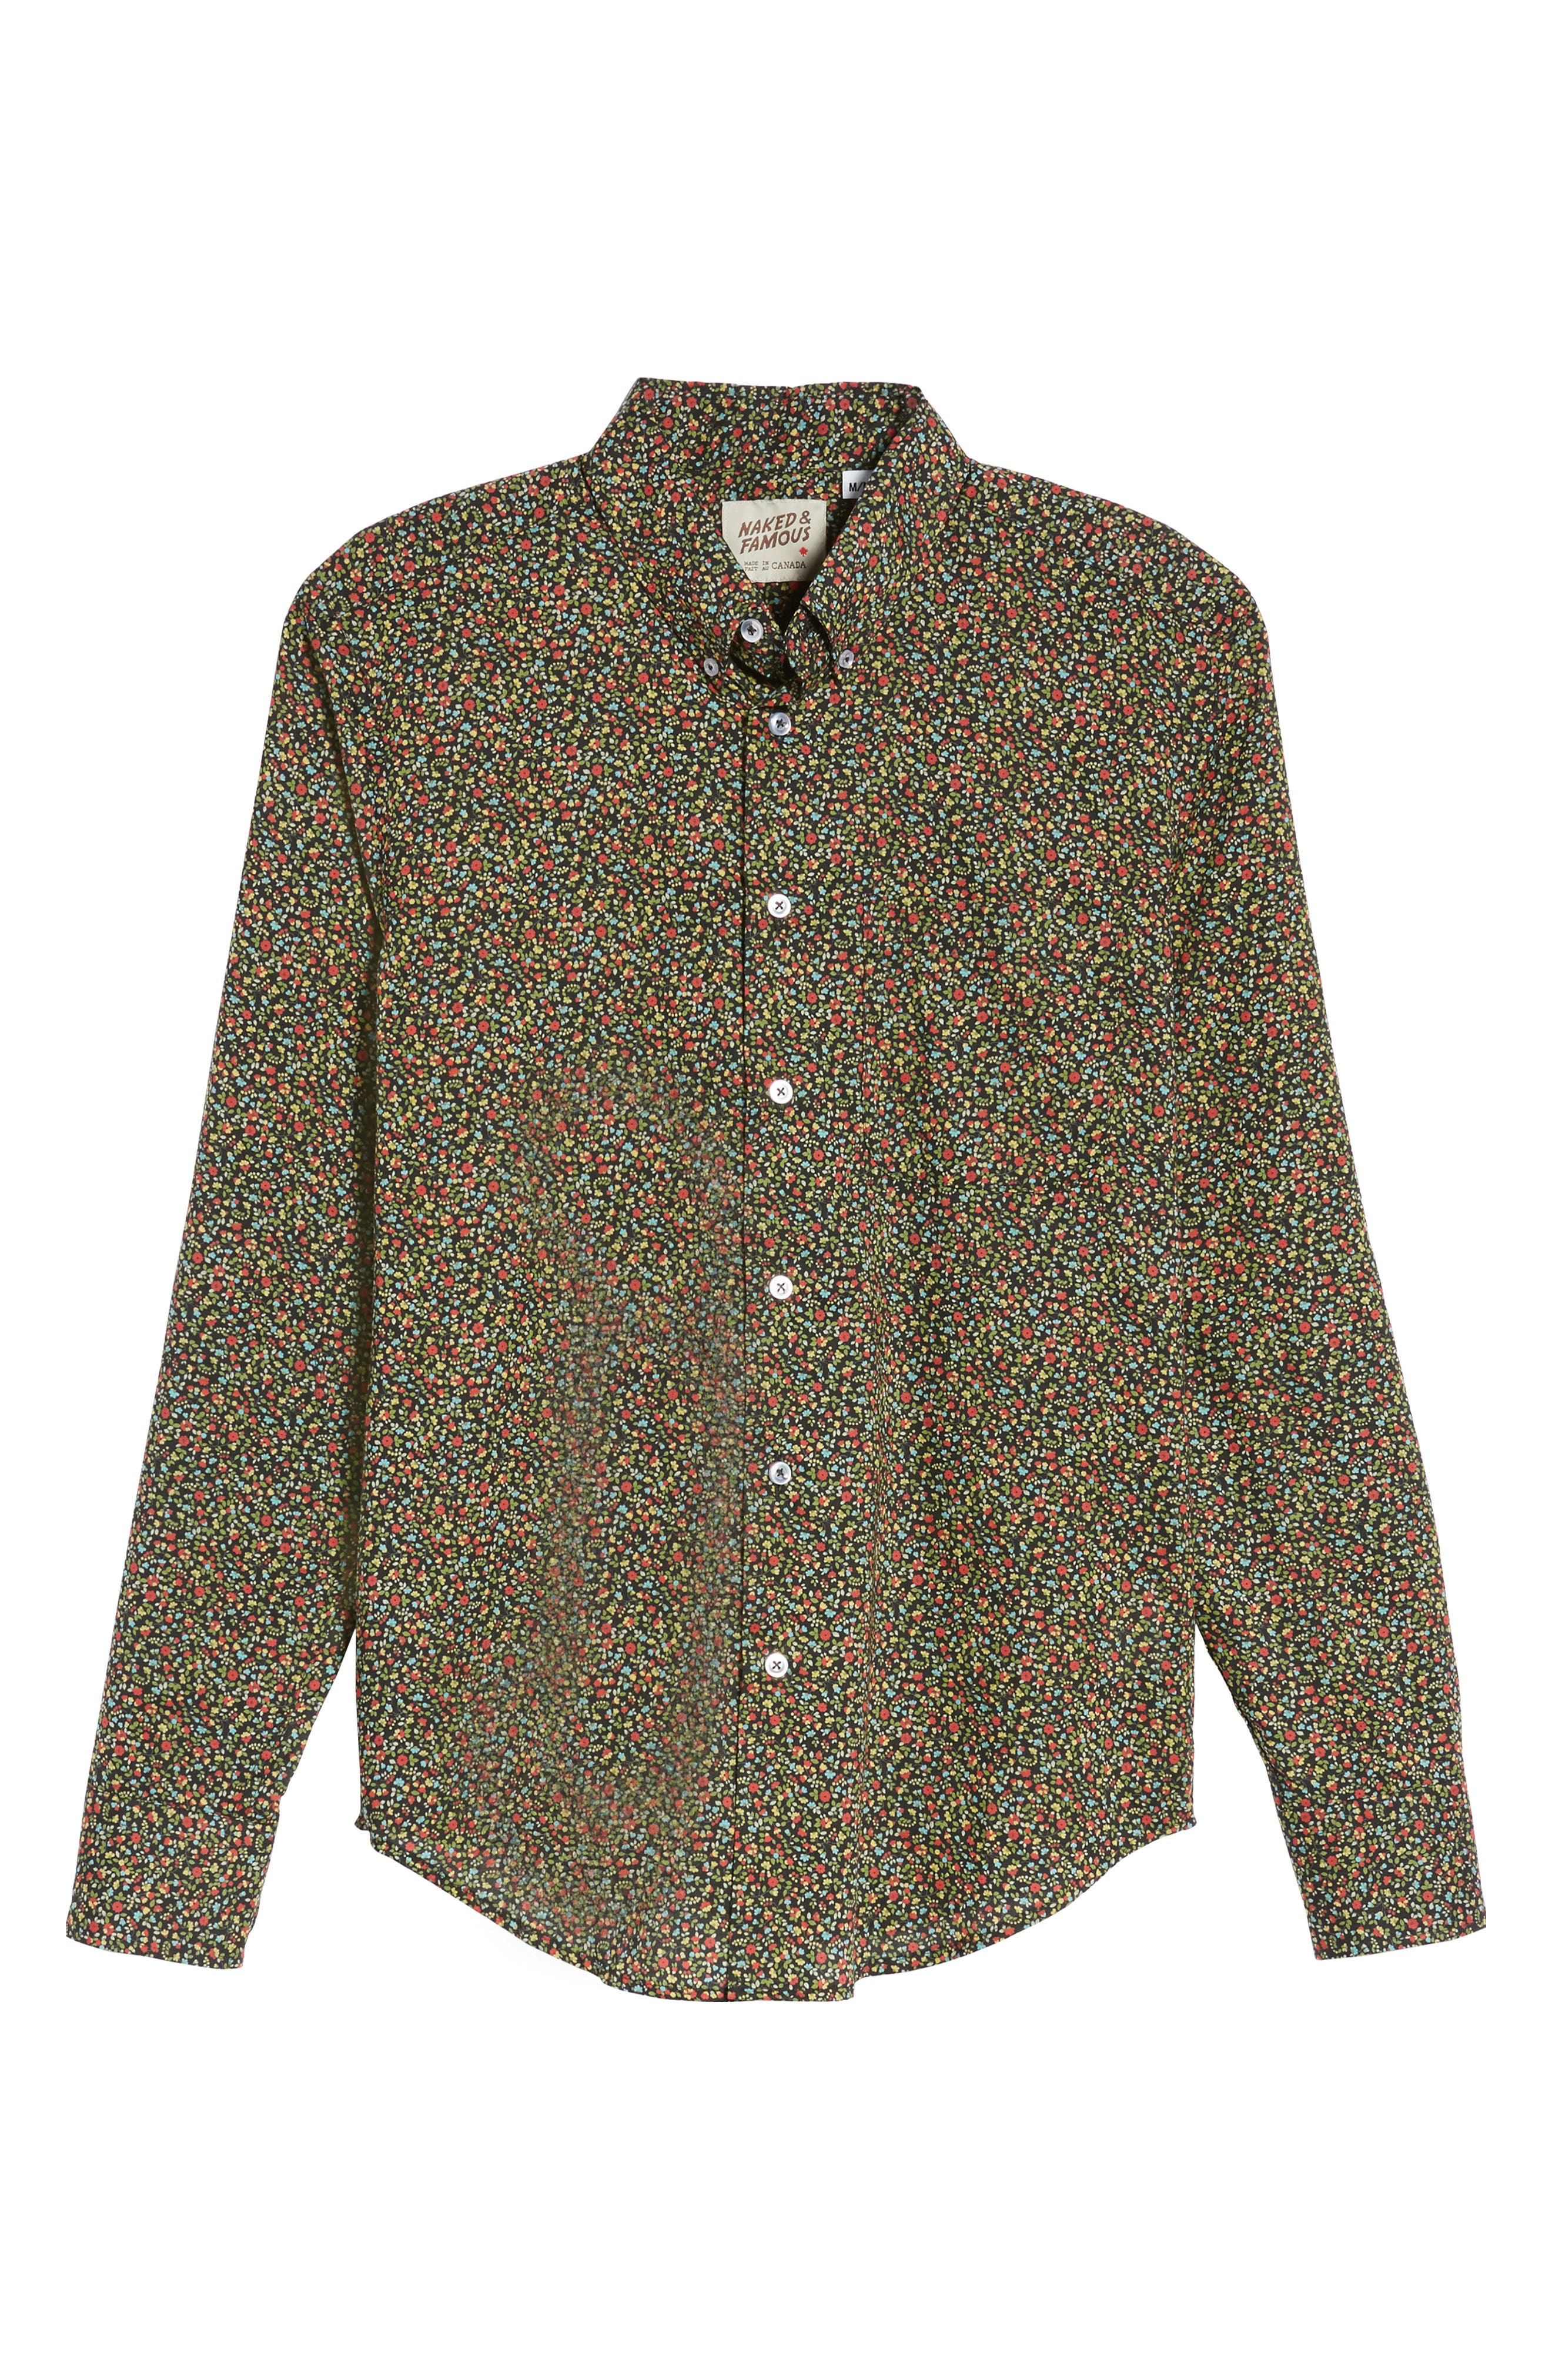 Naked & Famous Floral Shirt,                             Alternate thumbnail 6, color,